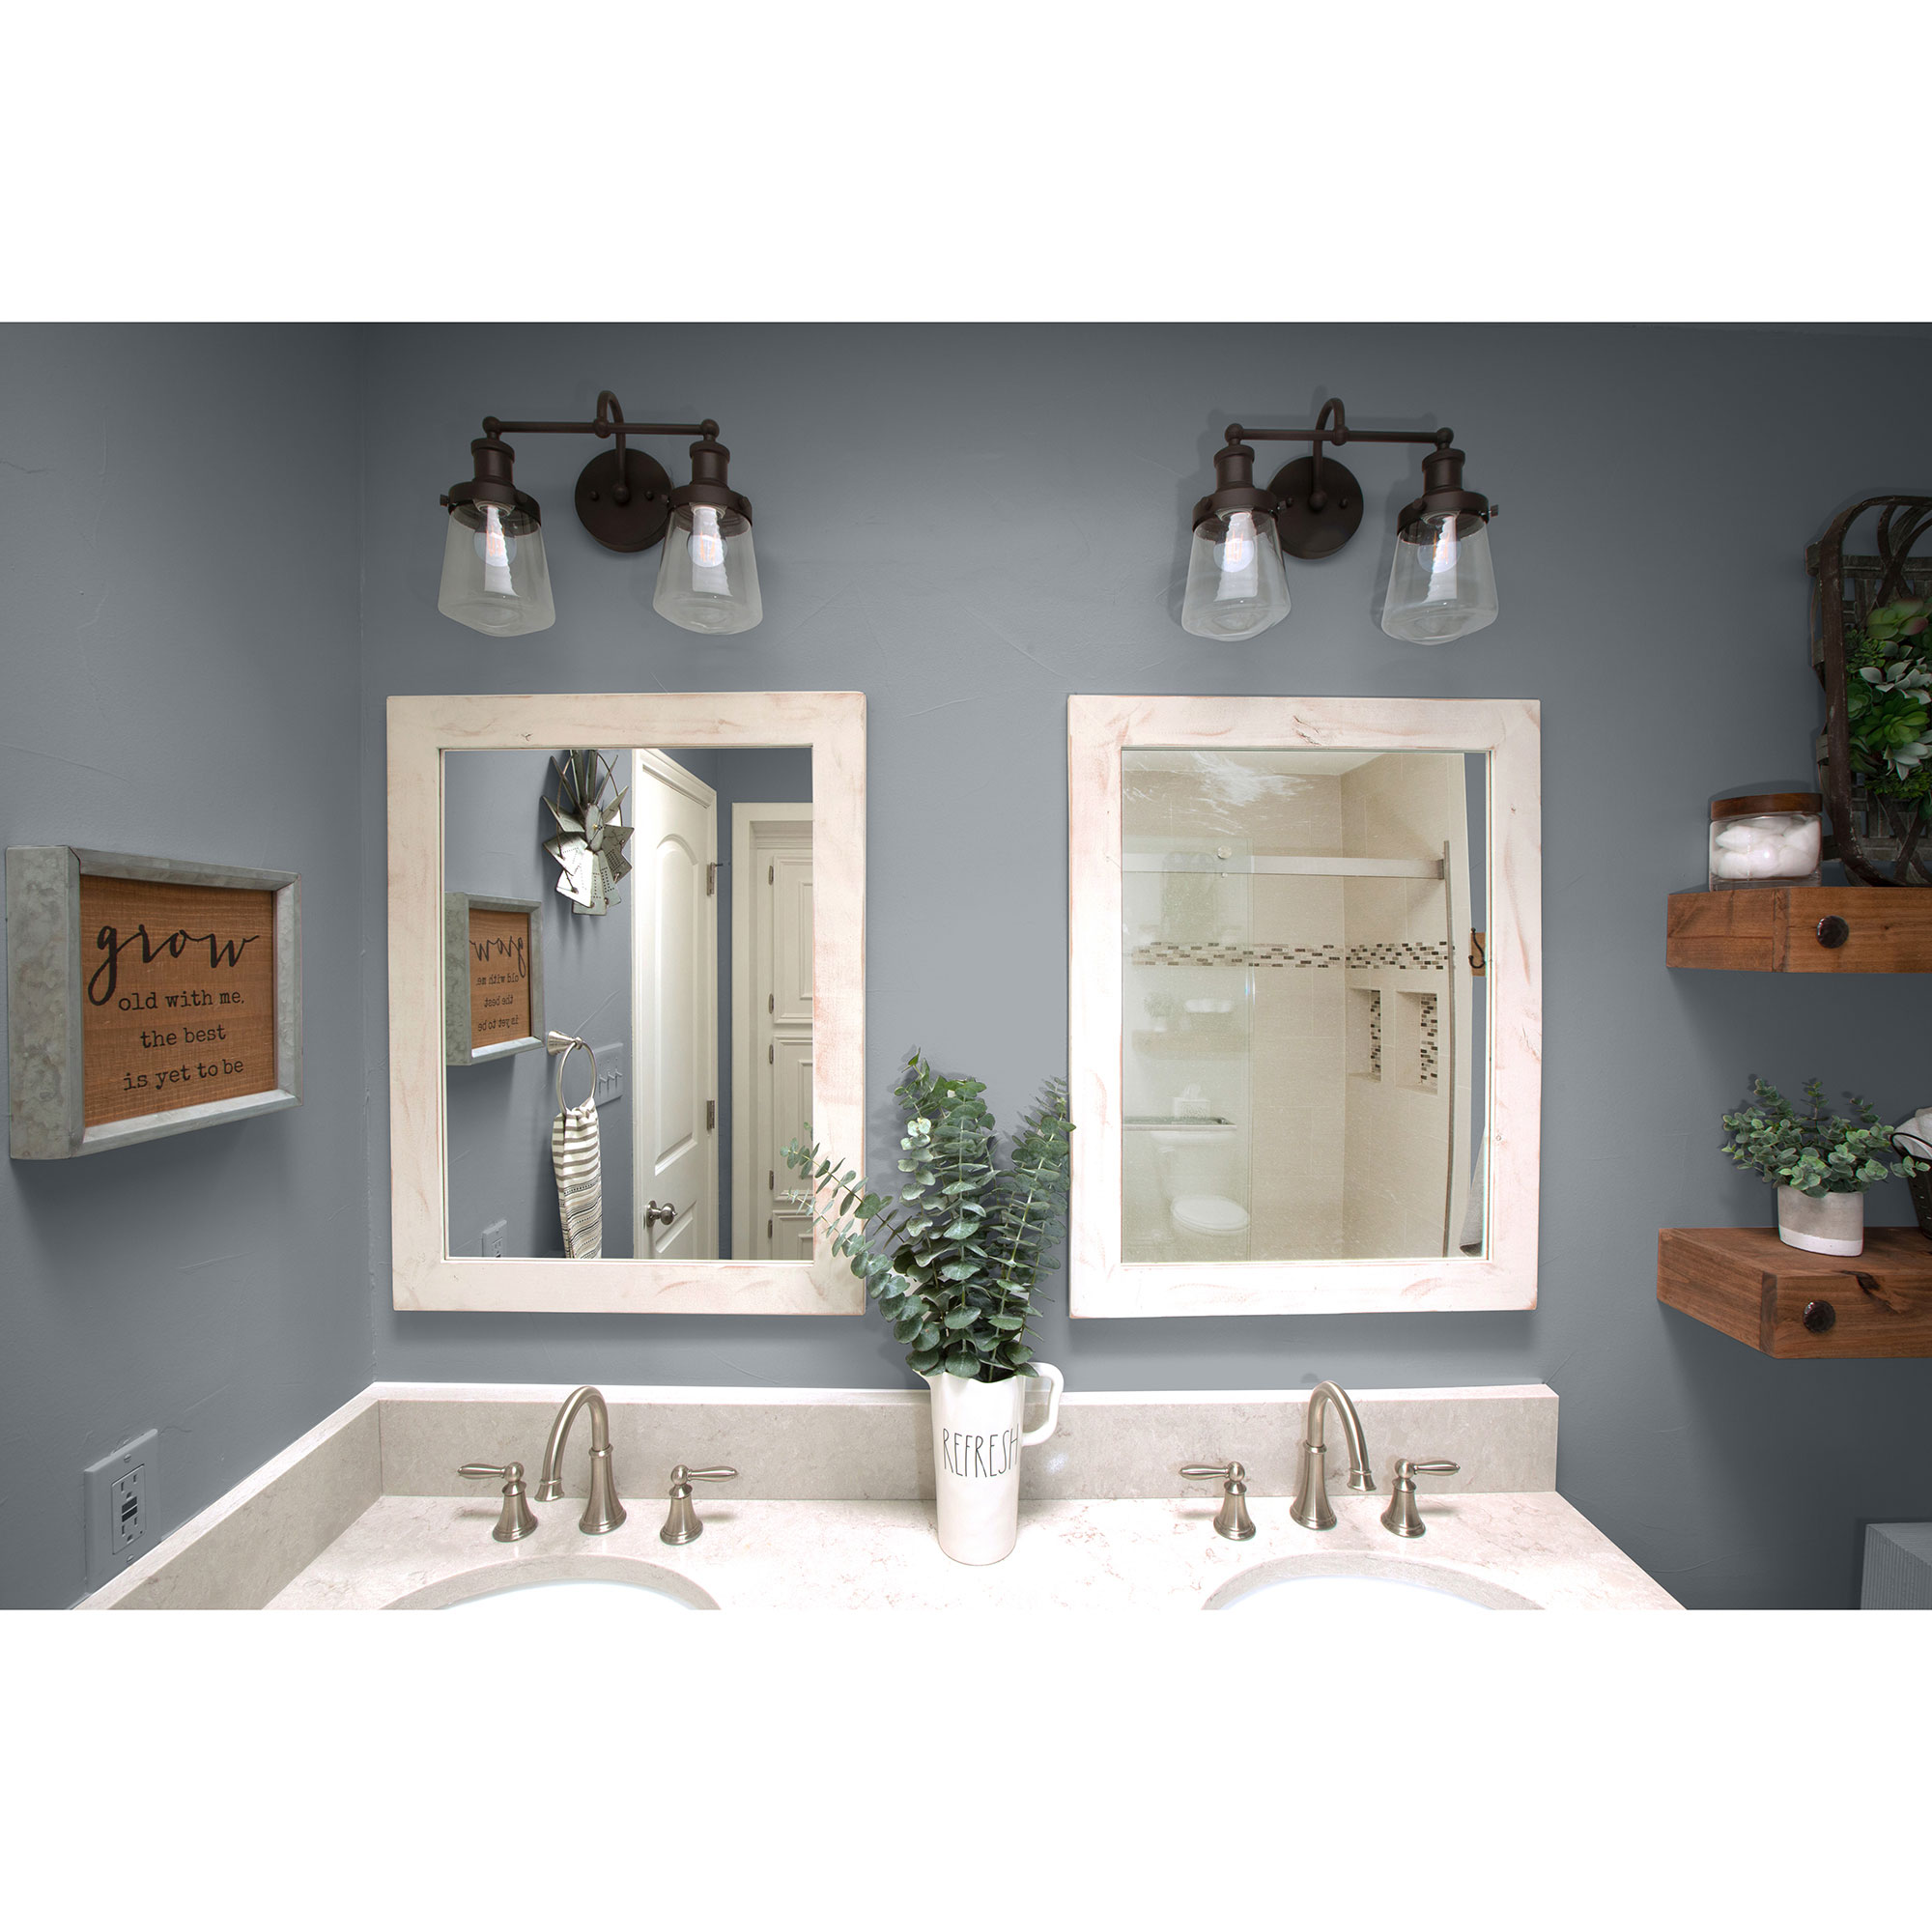 Farmhouse Bathroom Vanity Mirror 24x31 Whitewash Set Of 2 Drakestone Designs